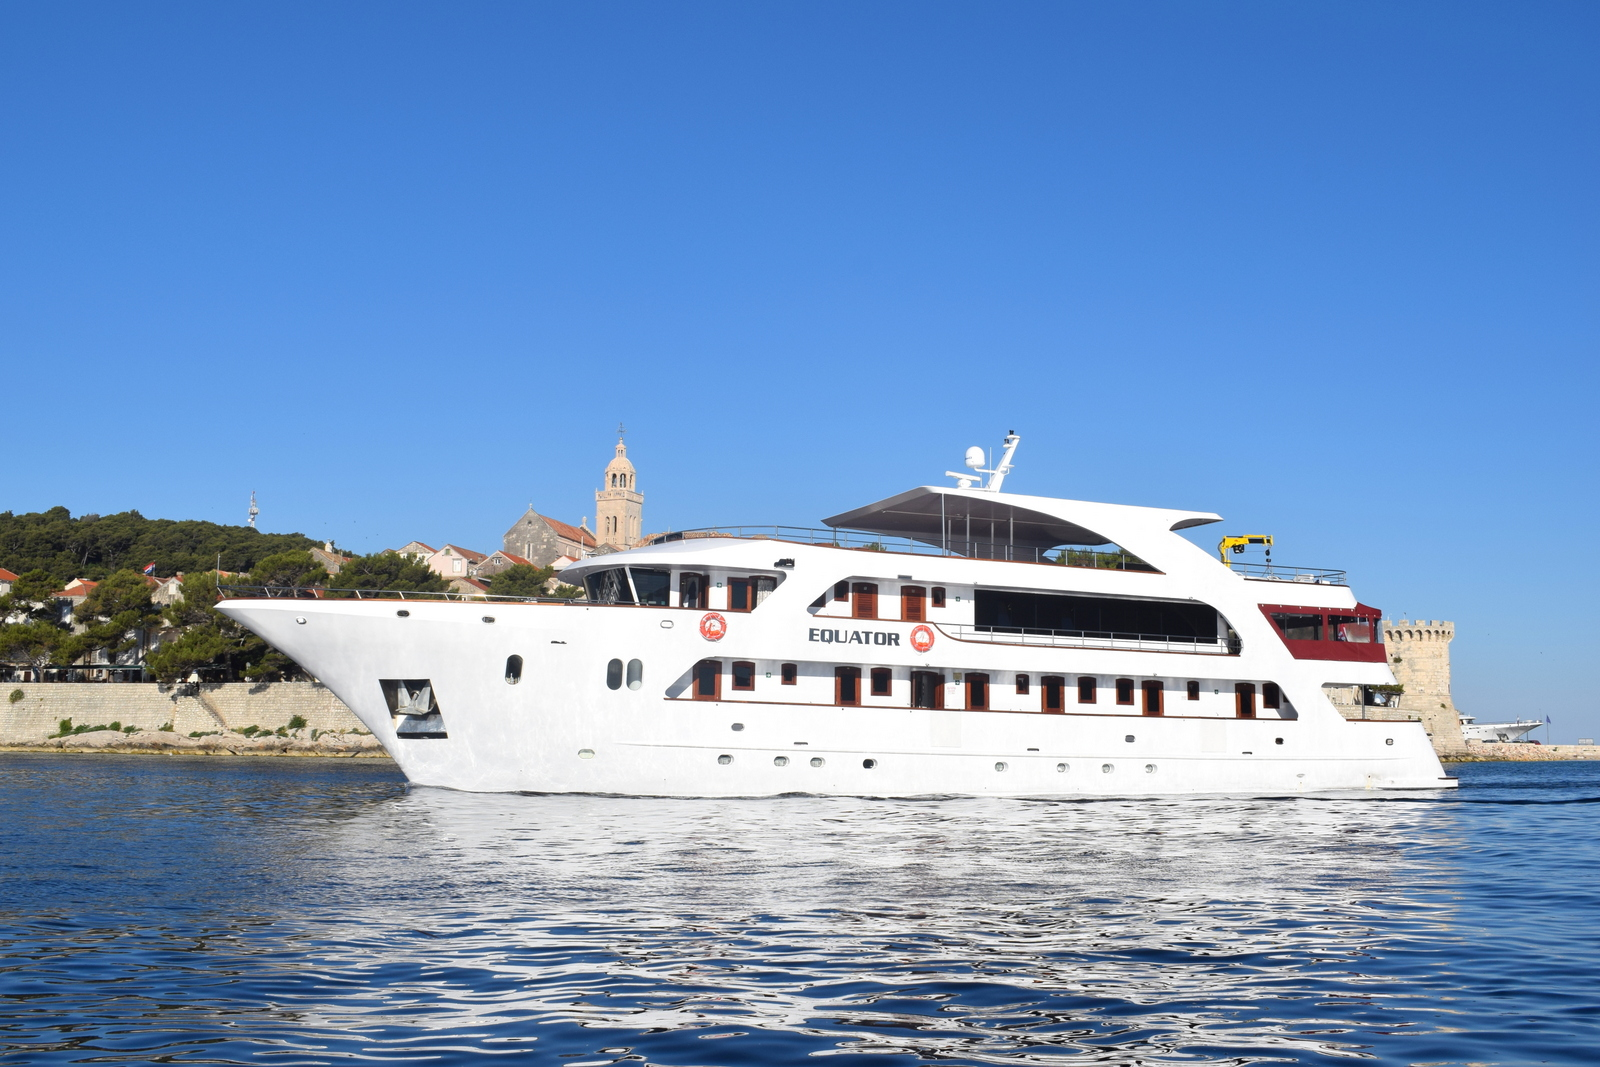 Equator, the ship servicing Split to Dubrovnik cruise - Premium class